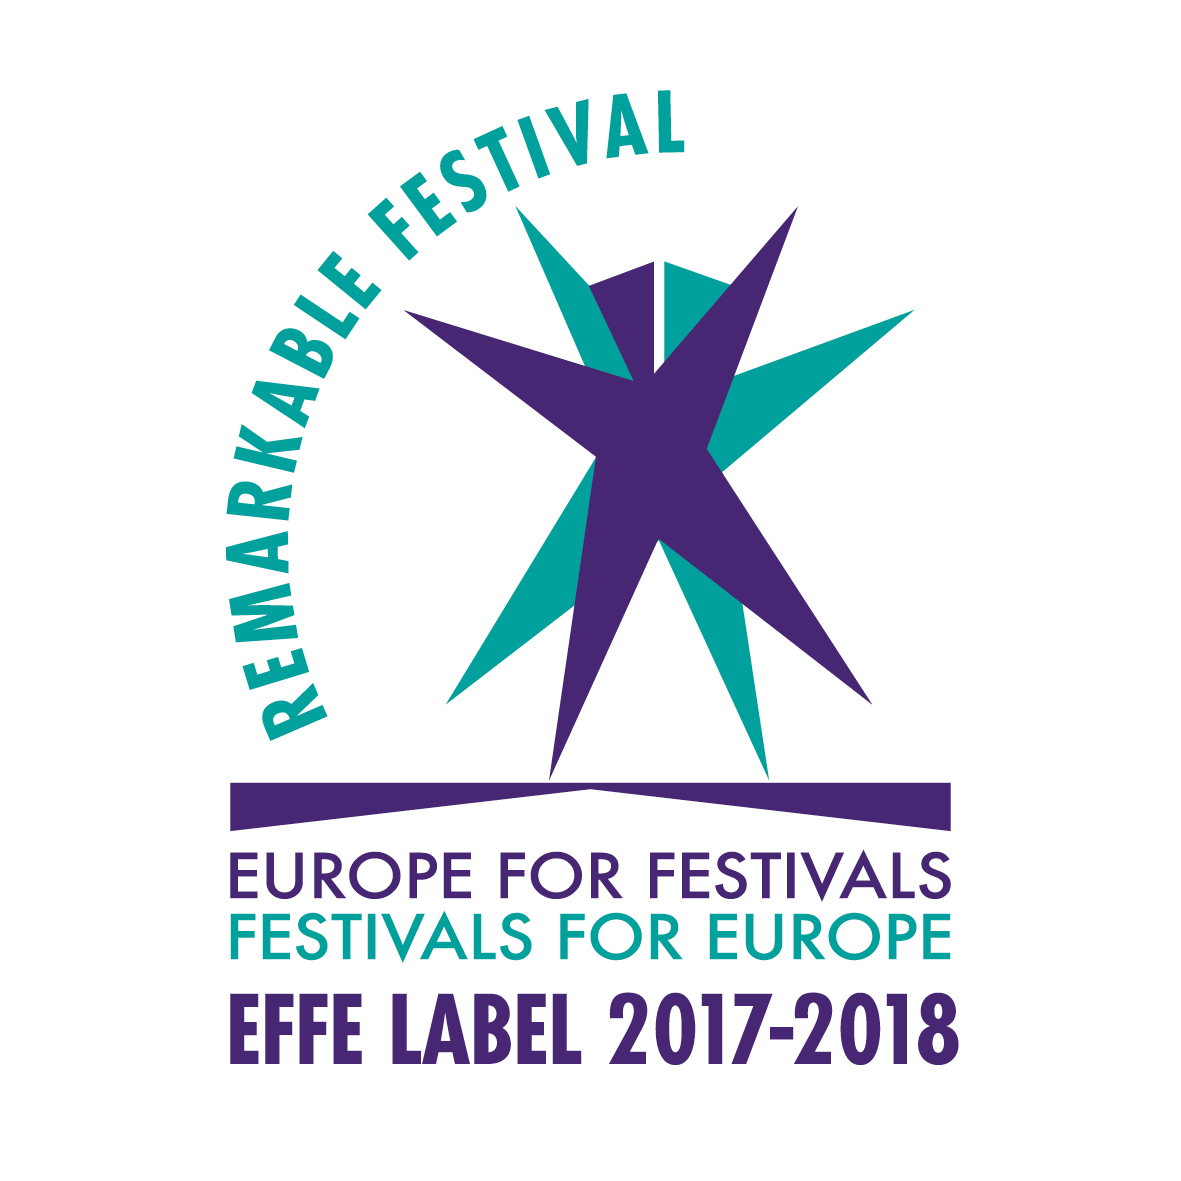 EFFE LABEL LOGO